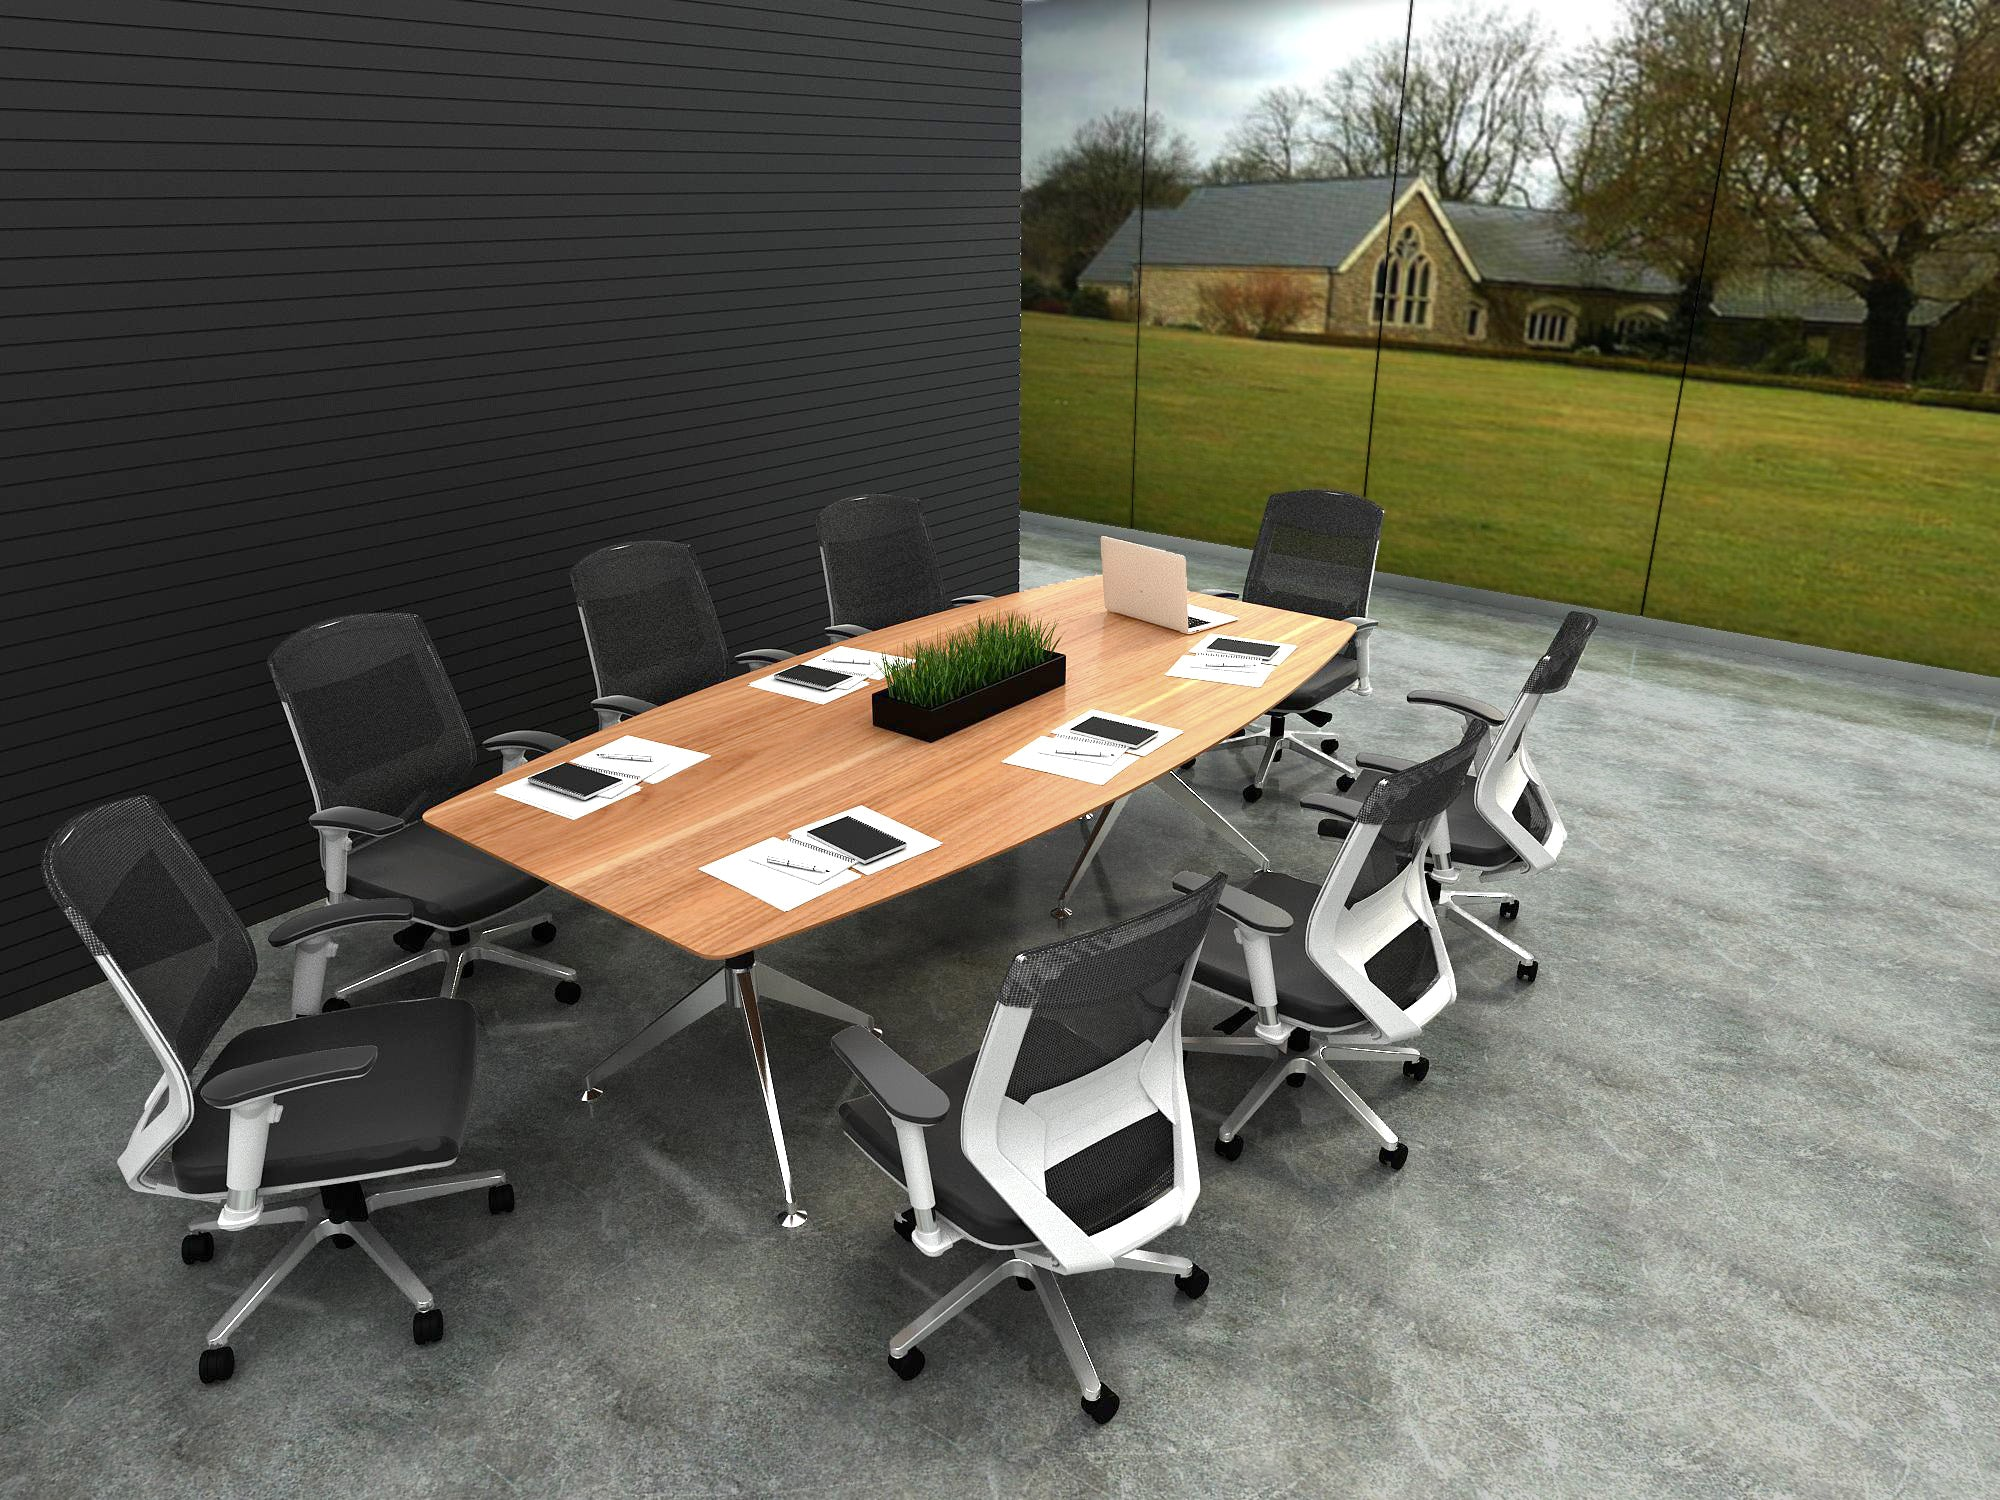 Potenza™ Boardroom Table For Home Or Office - KiPP